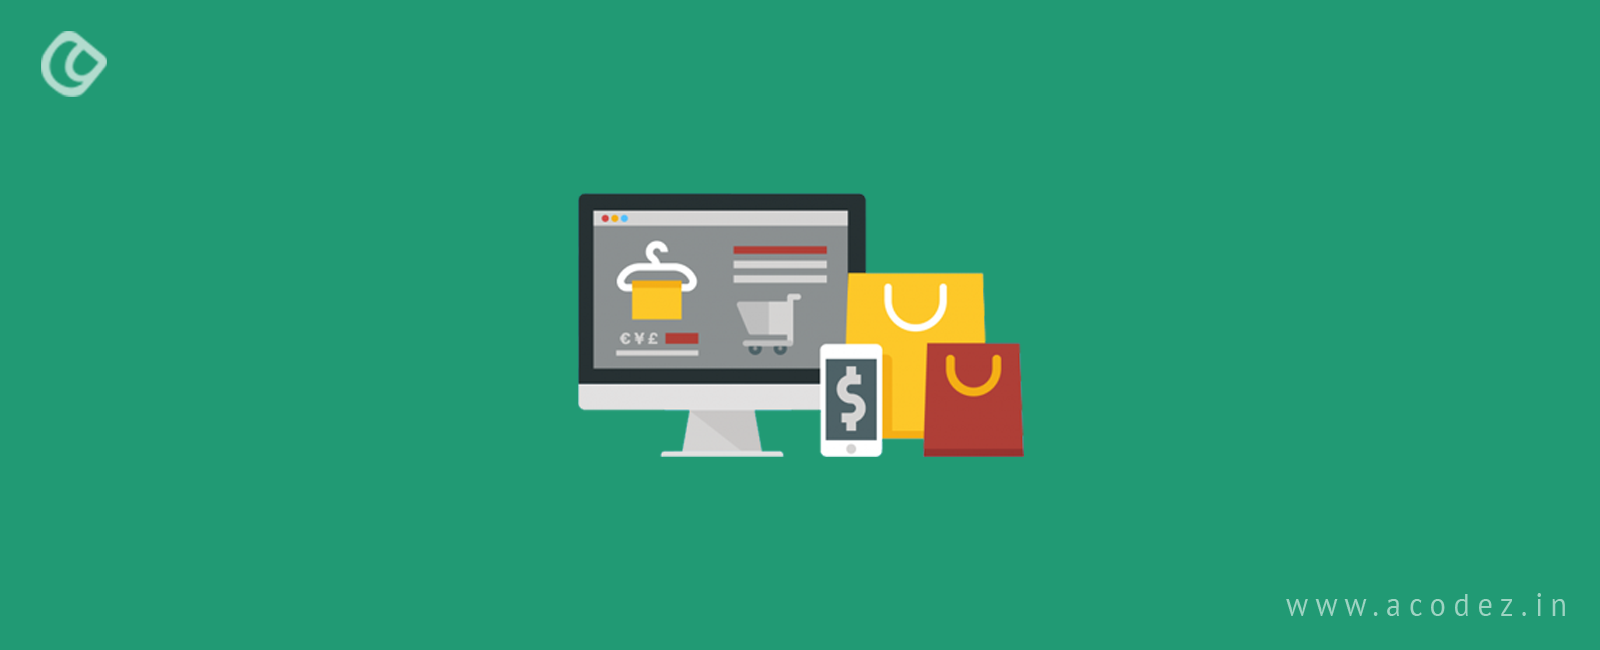 Advantages and Disadvantages of E-commerce - Pros and Cons of E-commerce